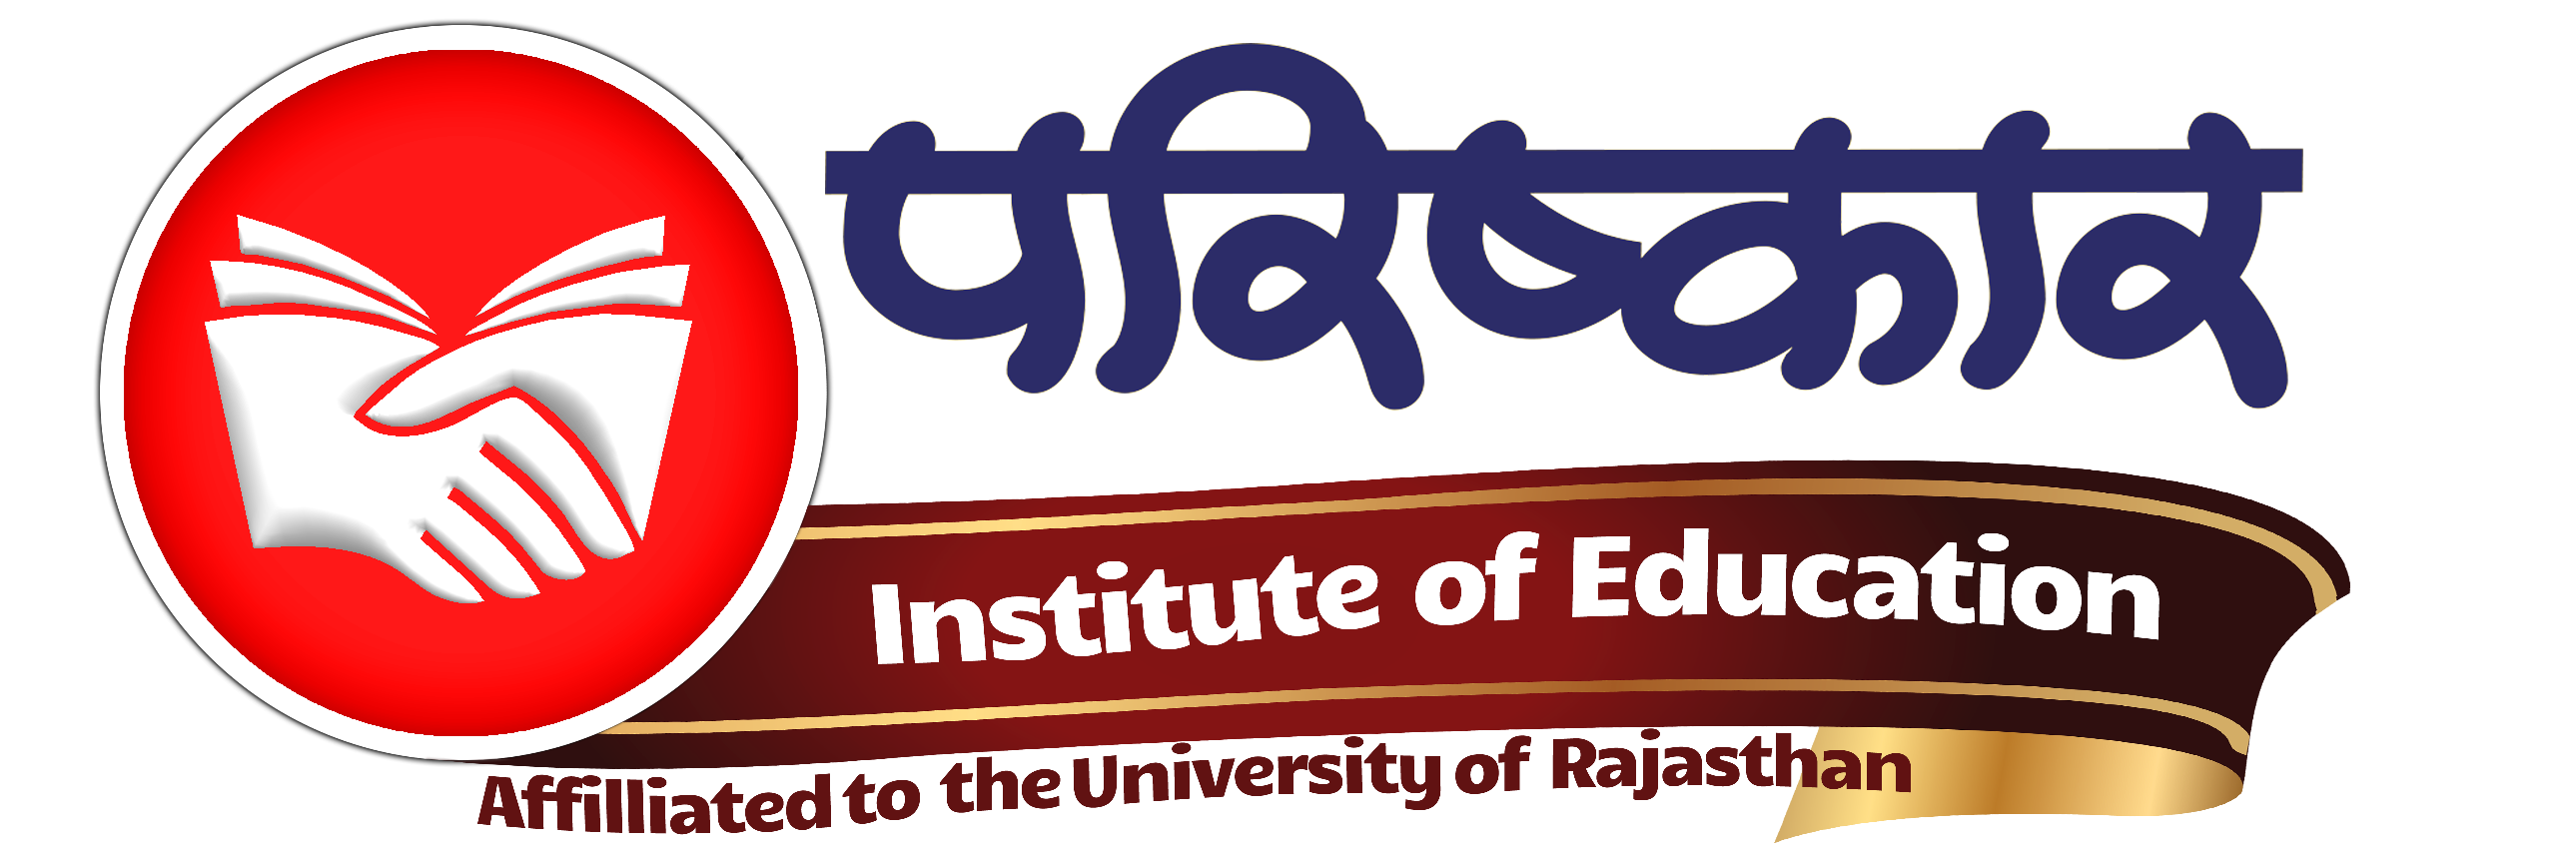 Parishkar Instituite of Education